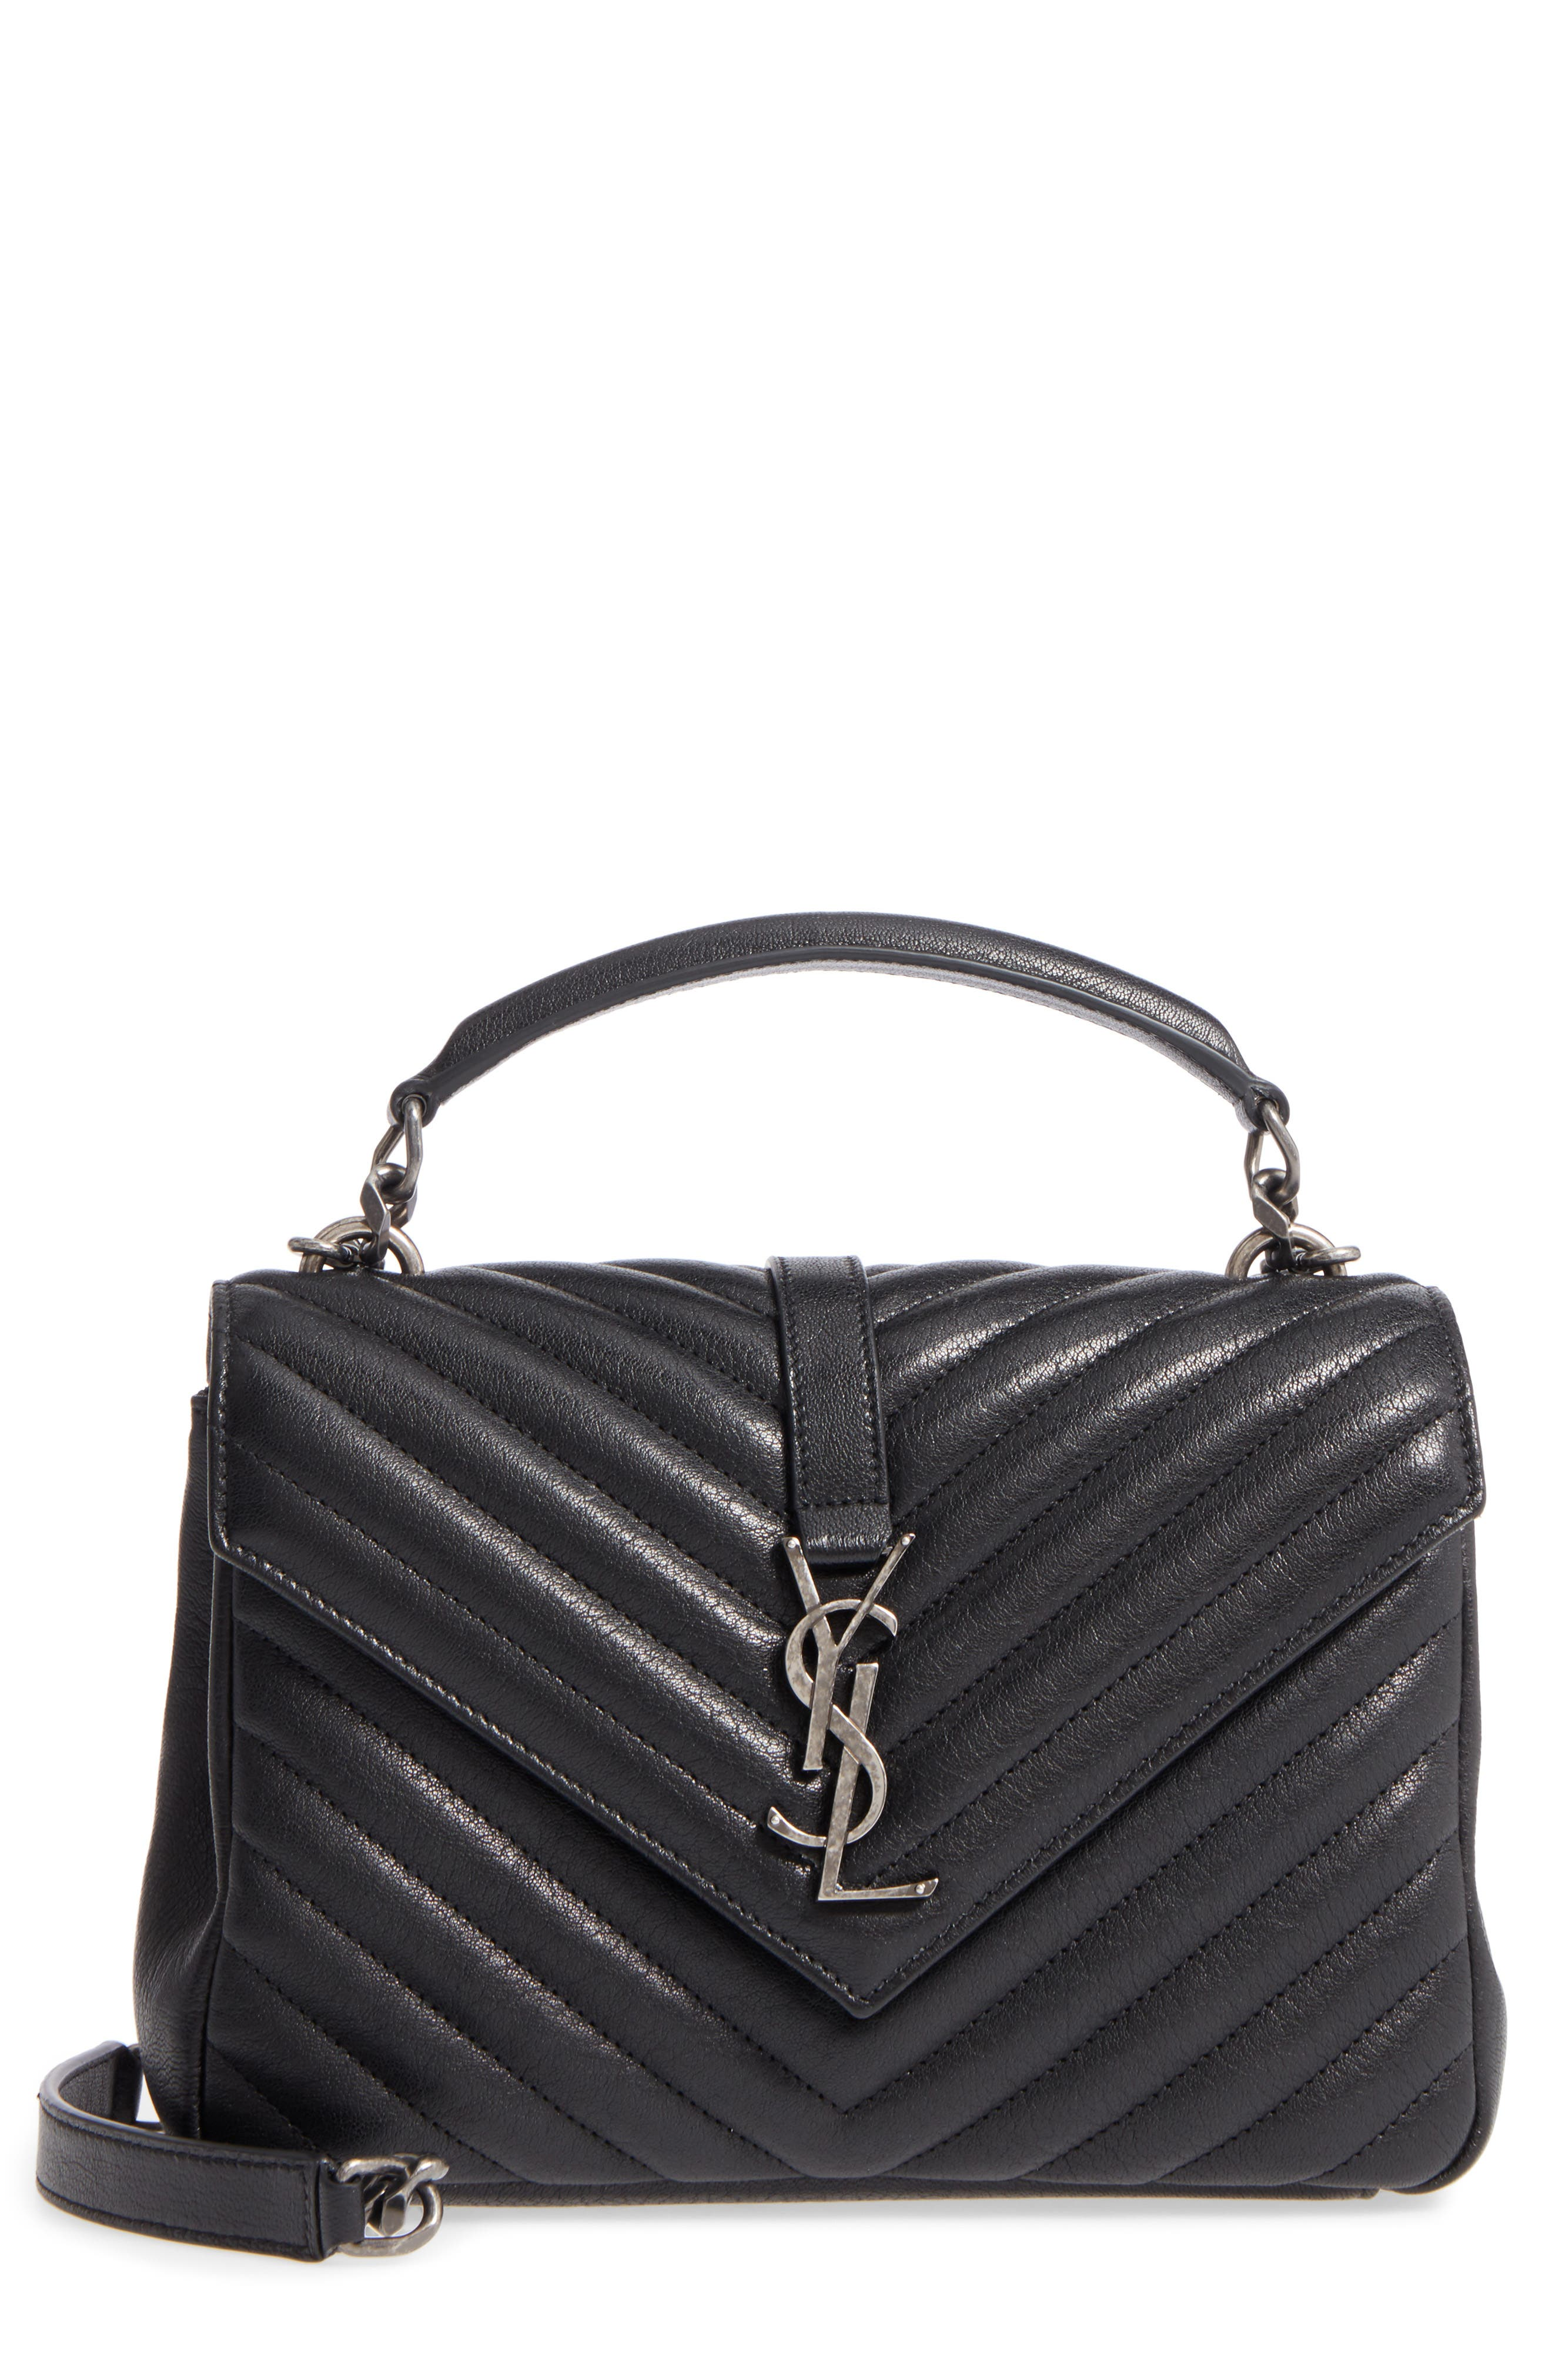 Medium College Quilted Leather Shoulder Bag,                             Main thumbnail 1, color,                             NOIR